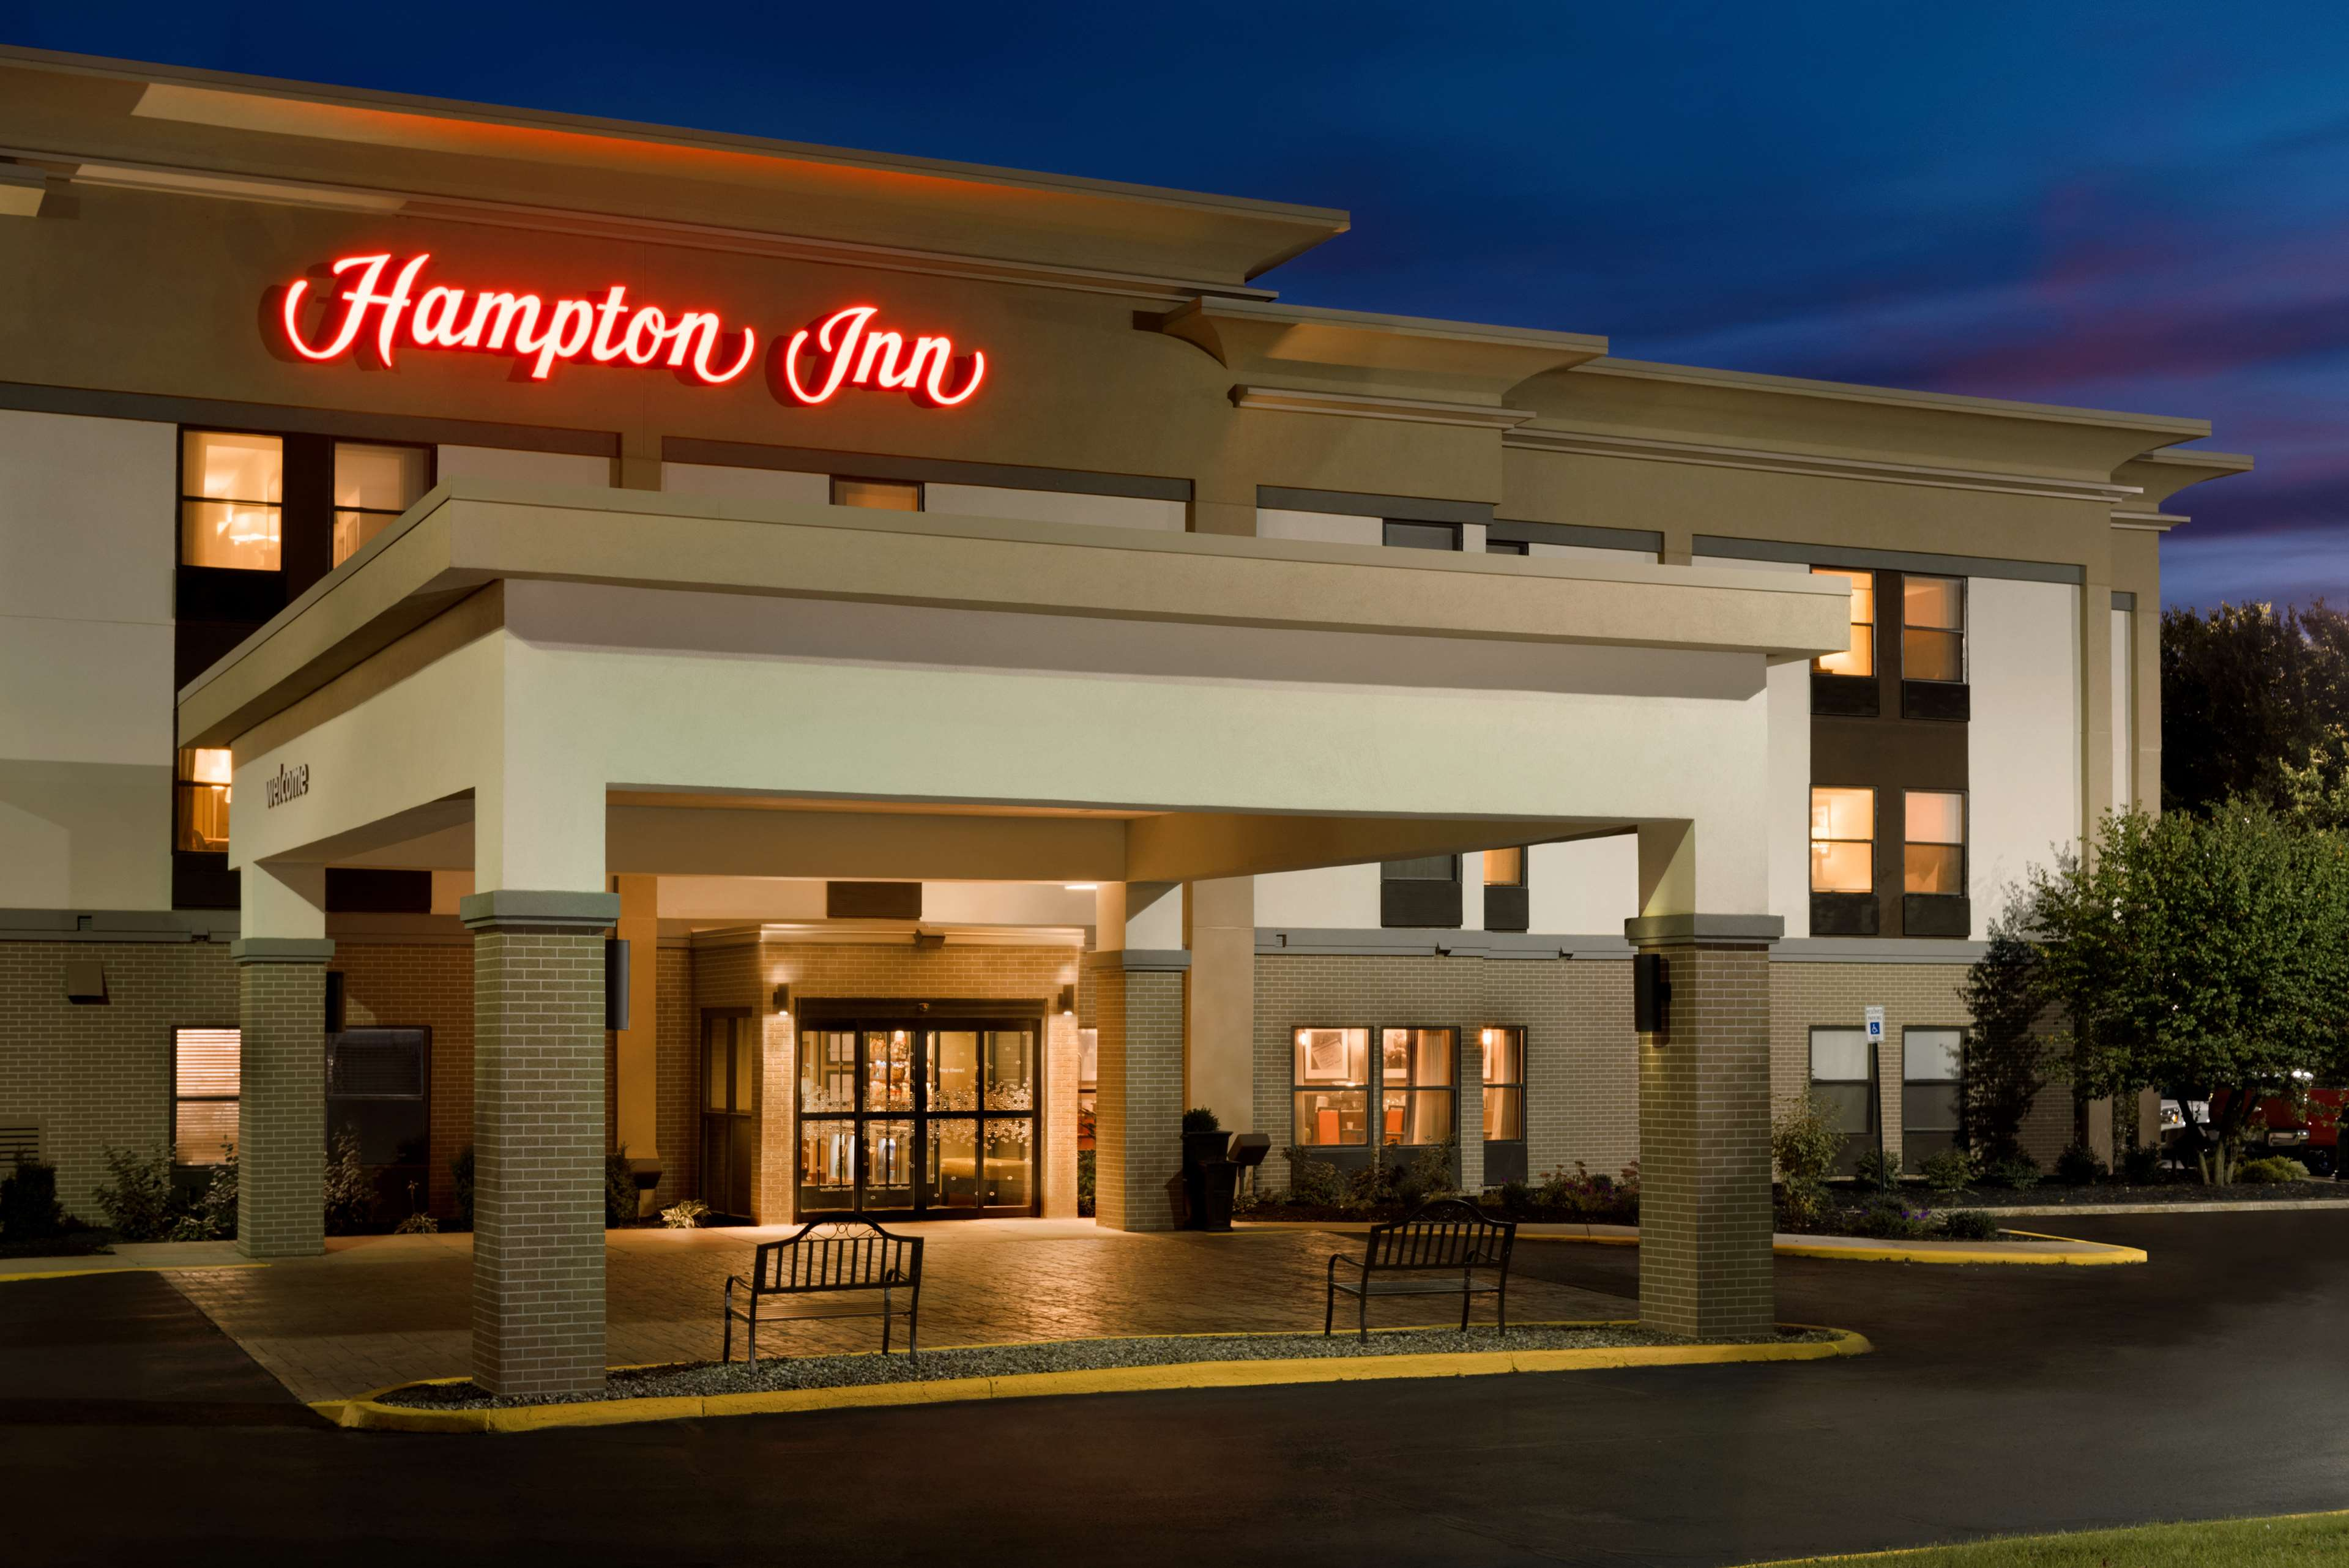 Hampton Inn Battle Creek image 0